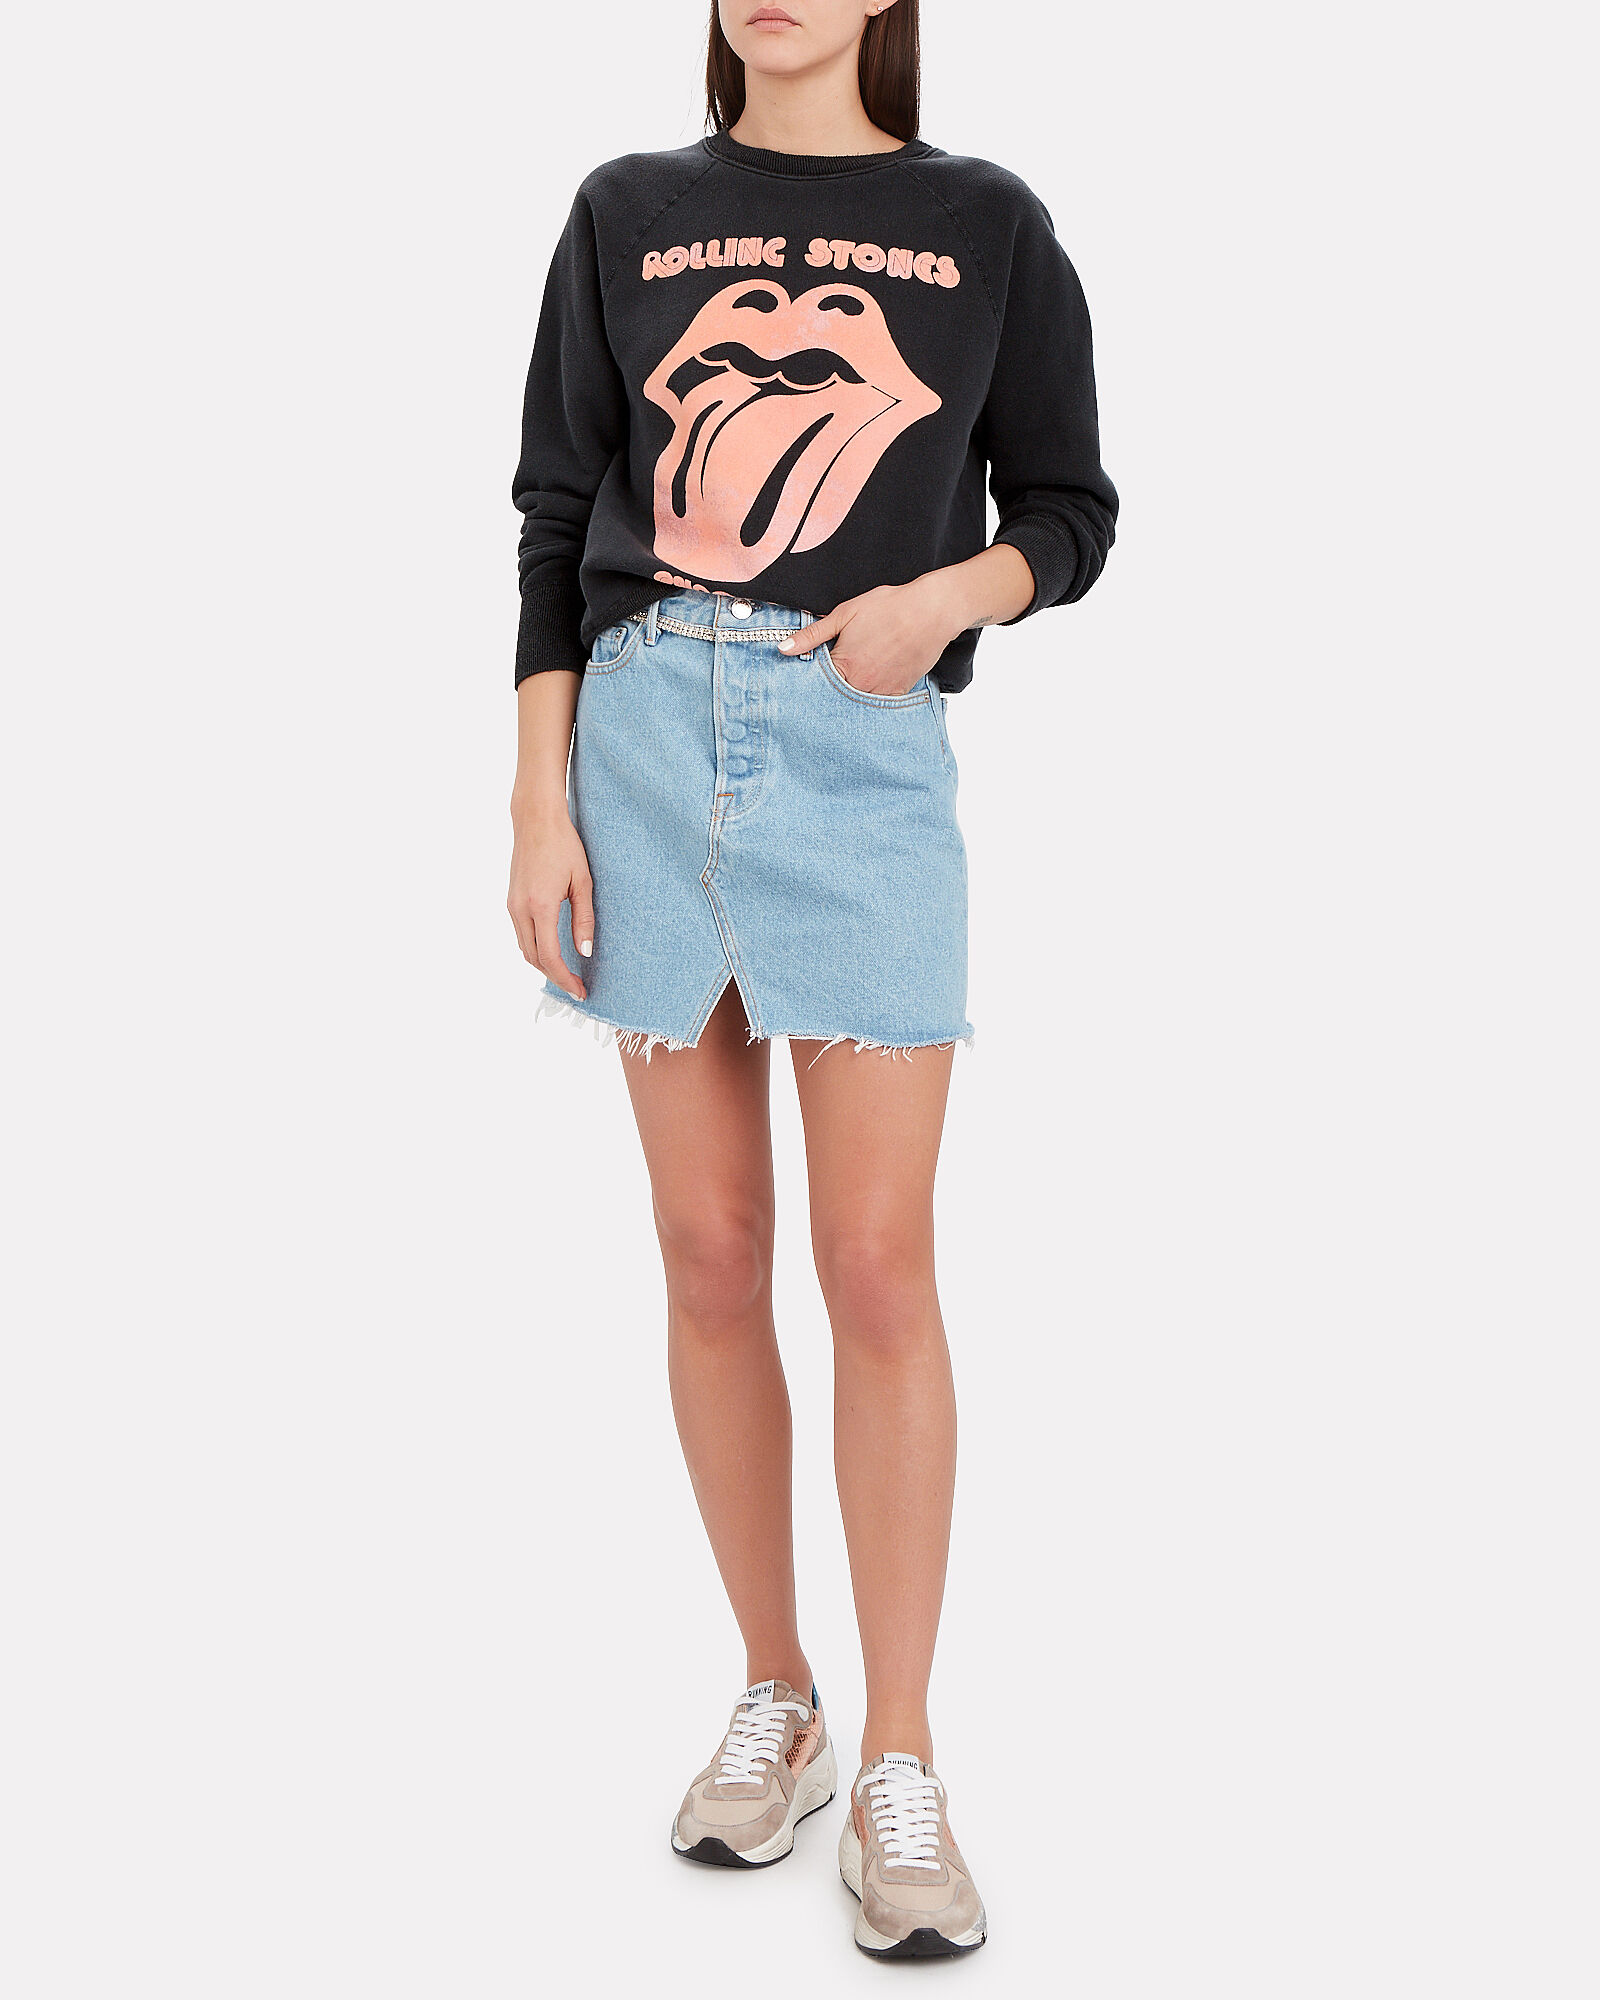 Rolling Stones 1982 Tour Sweatshirt, BLACK, hi-res